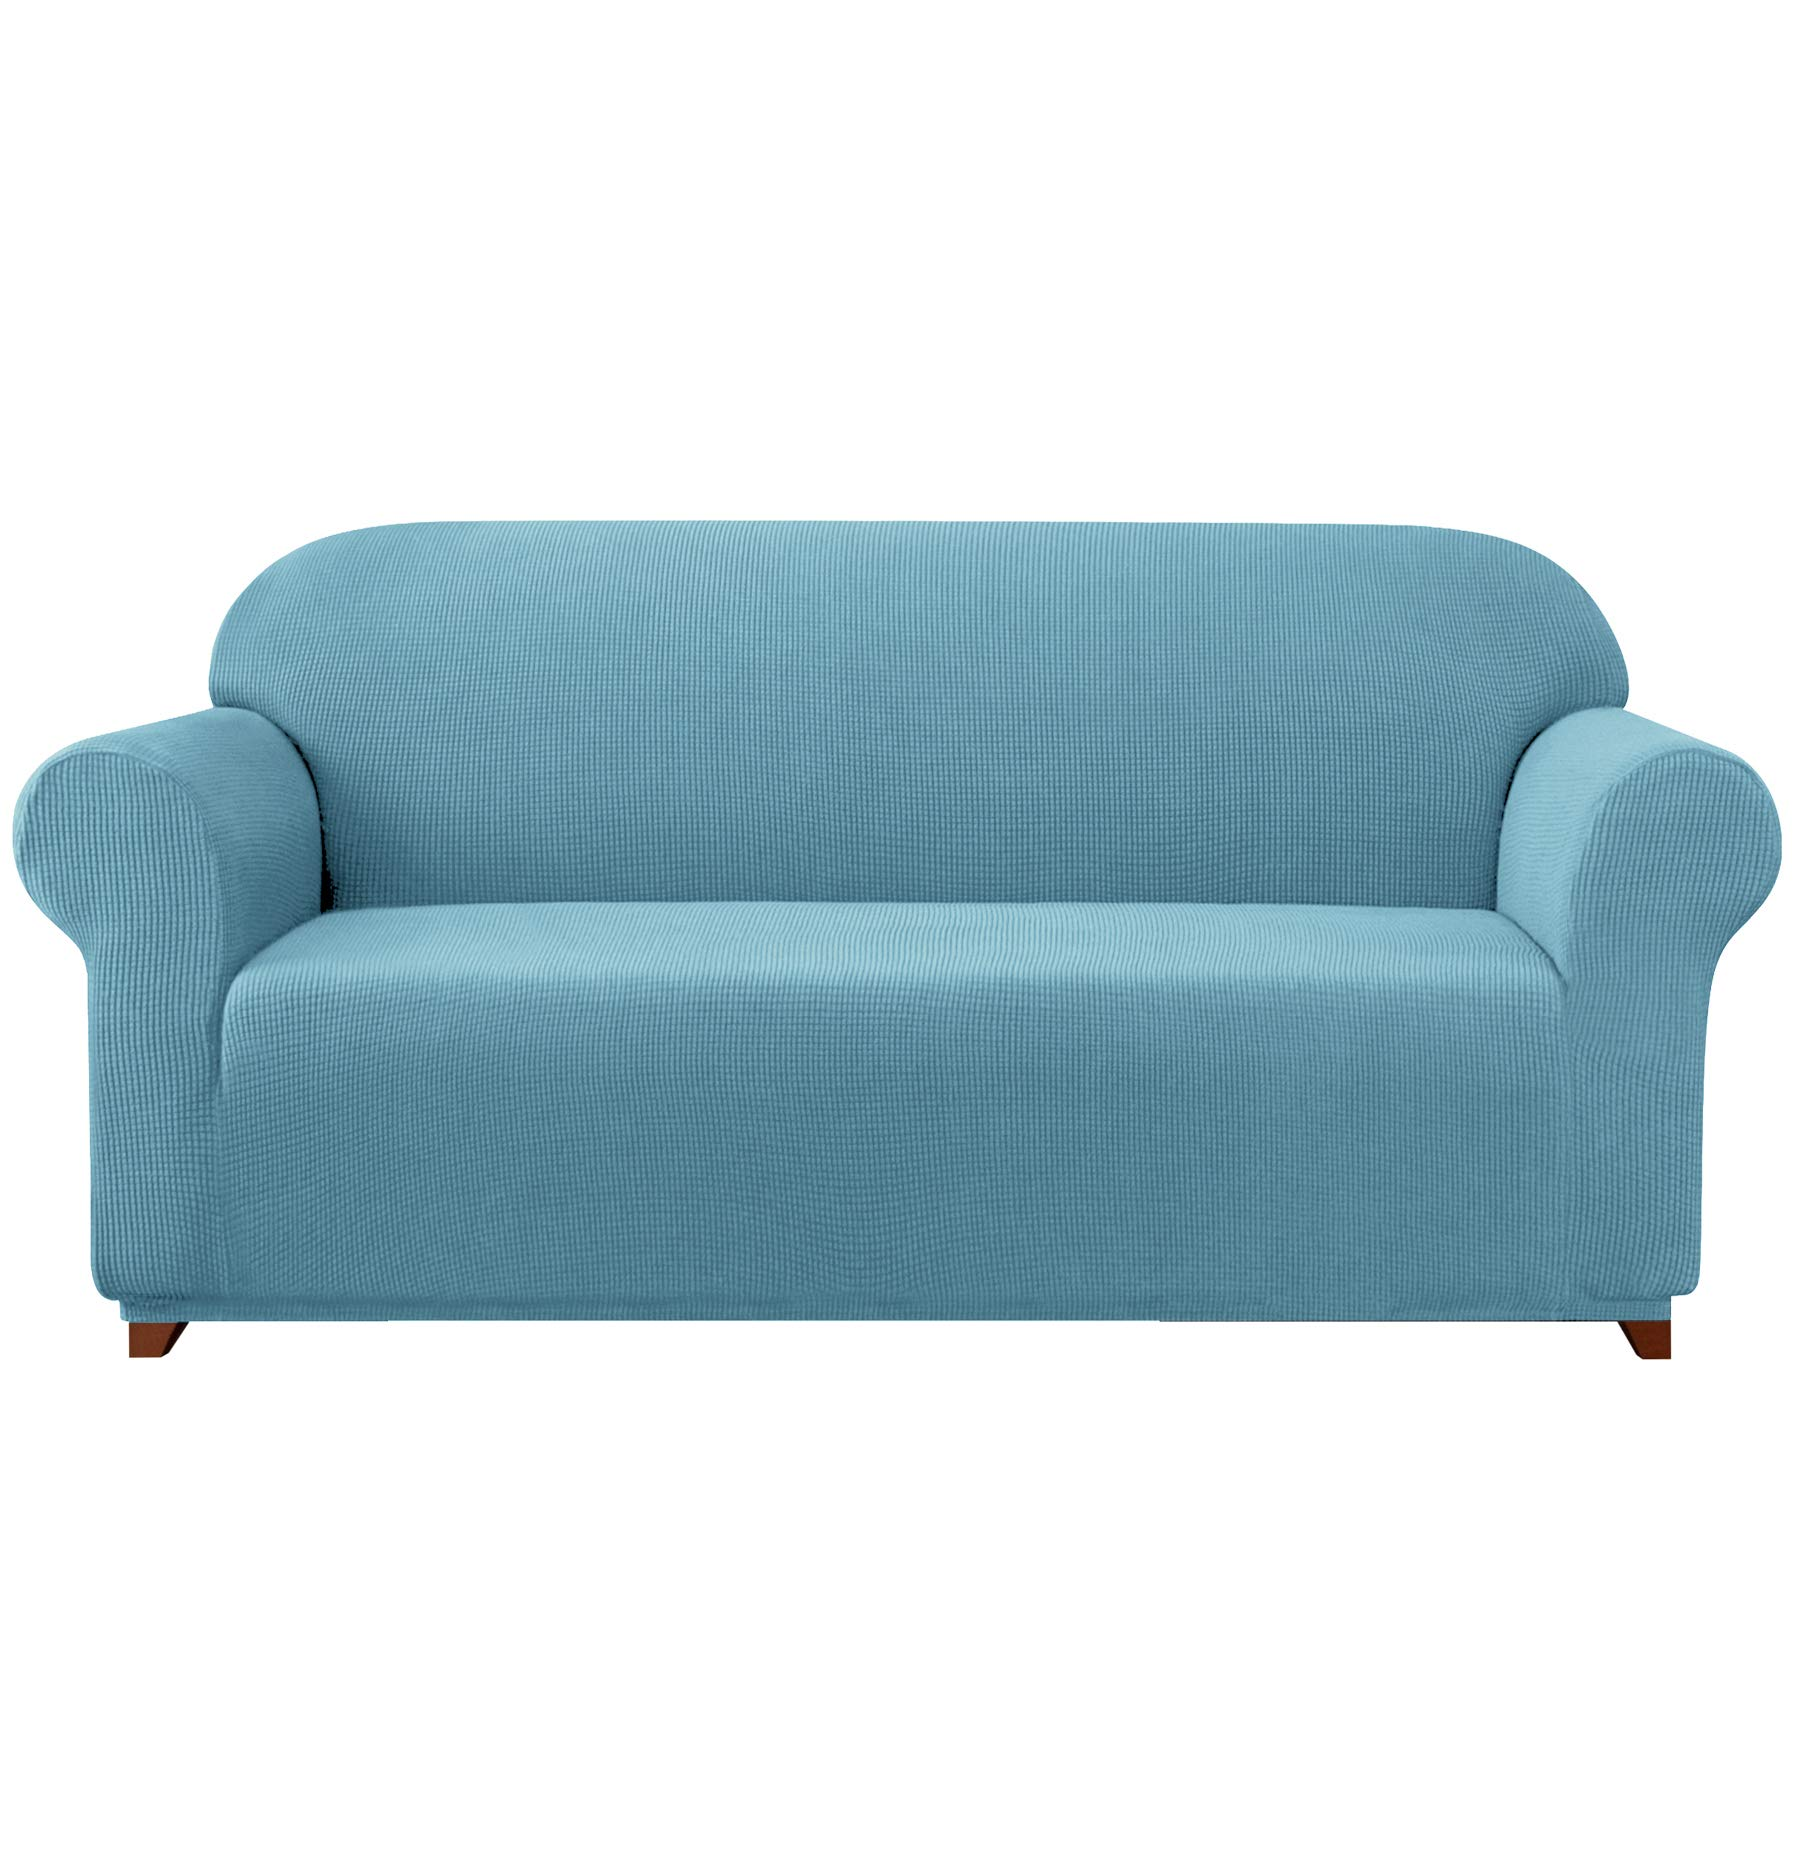 subrtex 1-Piece Stretch Sofa Cover Spandex Jacquard Fabric Slipcovers for Couch, Armchair, Anti-Slip Furniture Protector (Sofa, Light Blue)